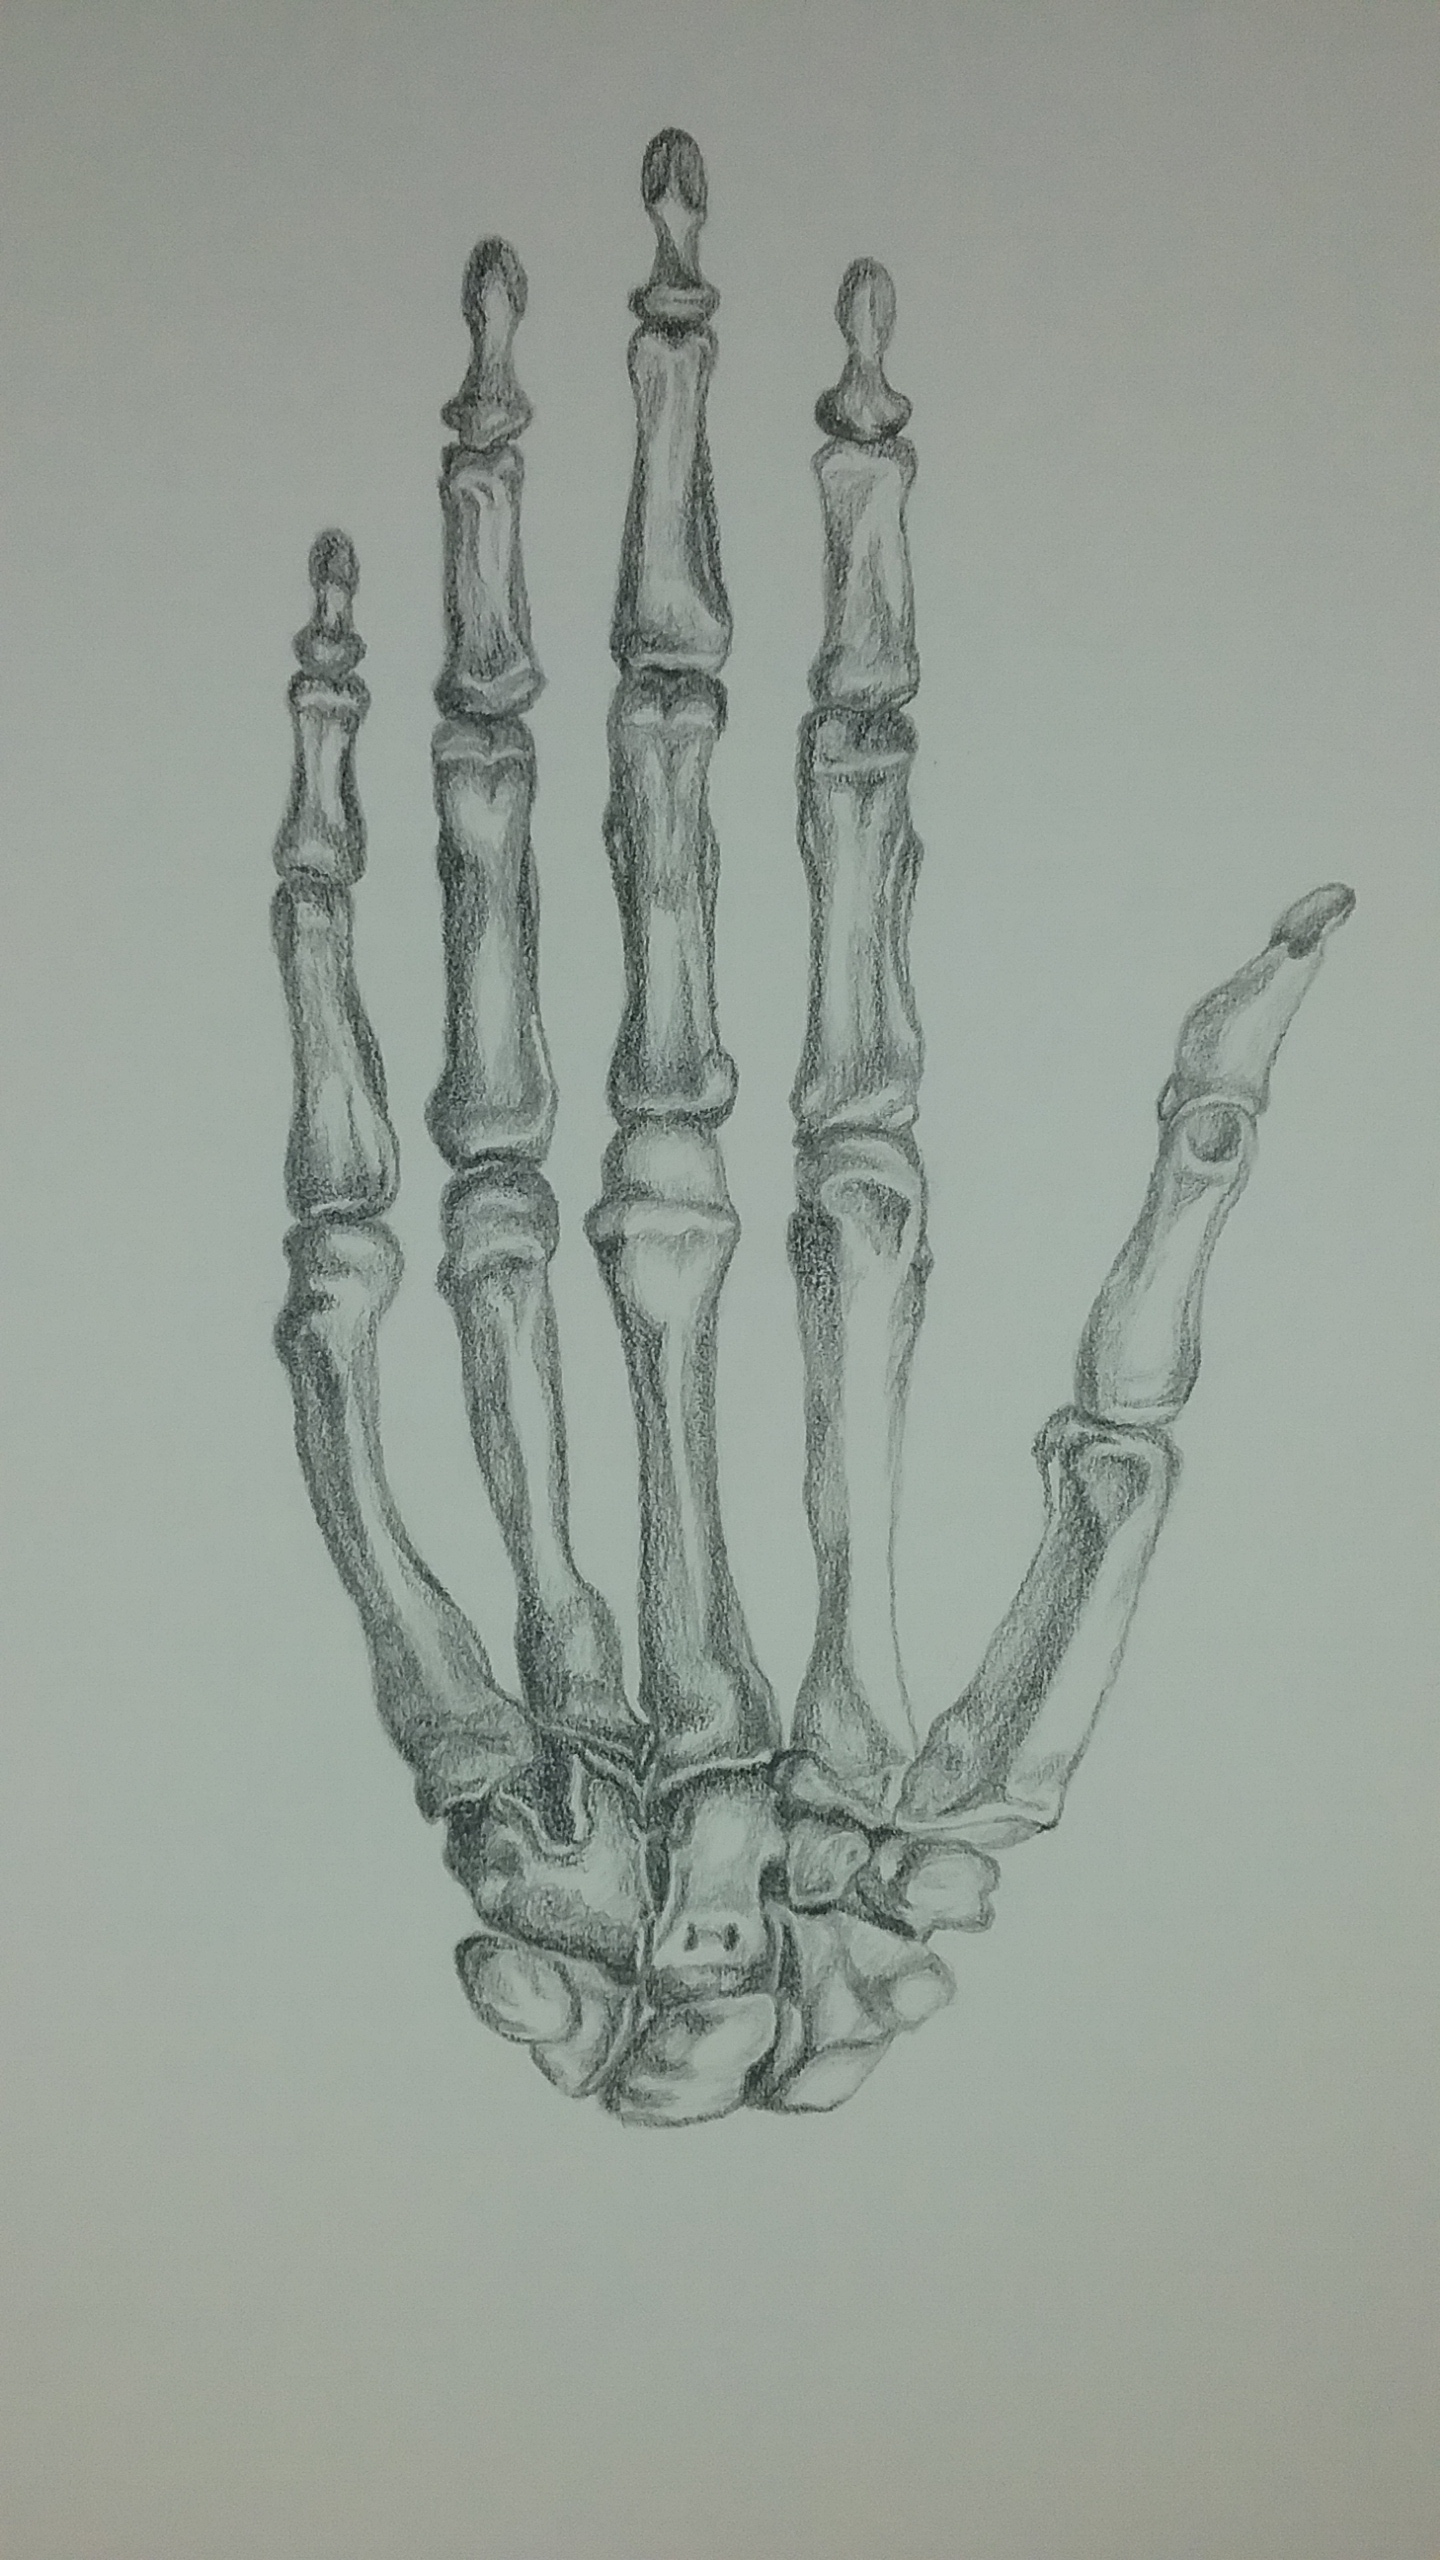 Skeletal hand by Mary Warner.